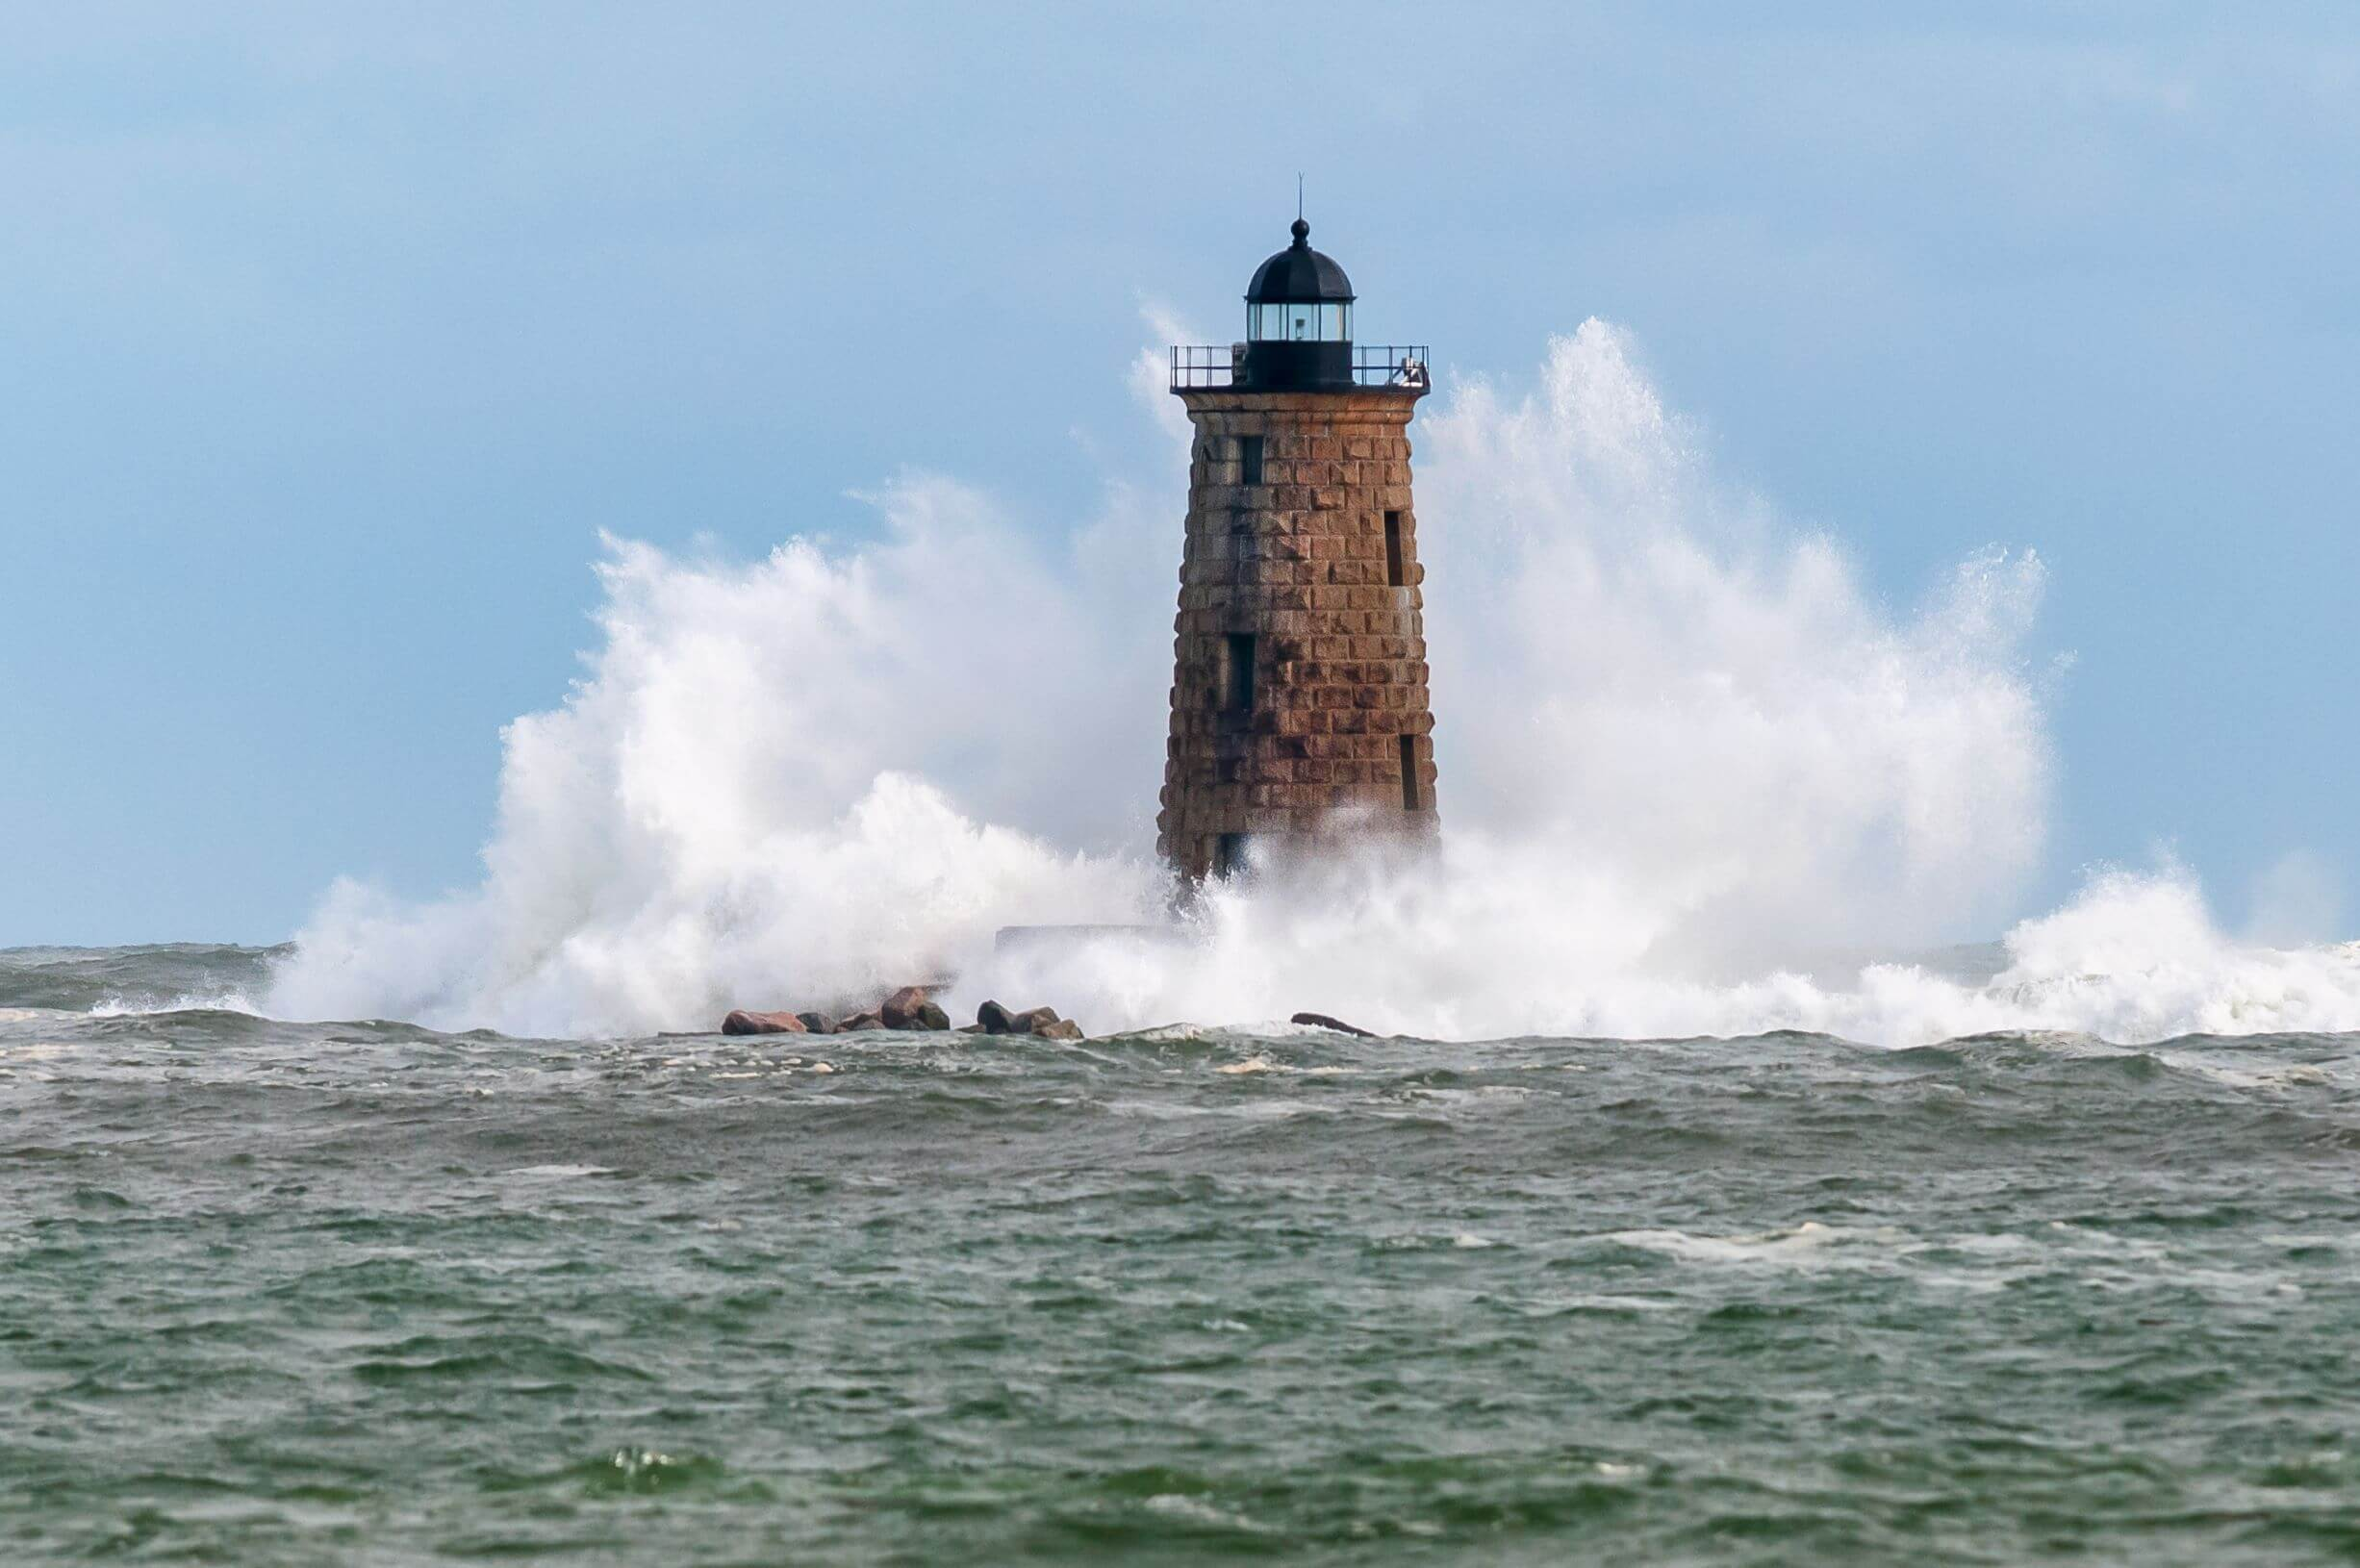 Lighthouse_Waves_shutterstock_1268454220_web